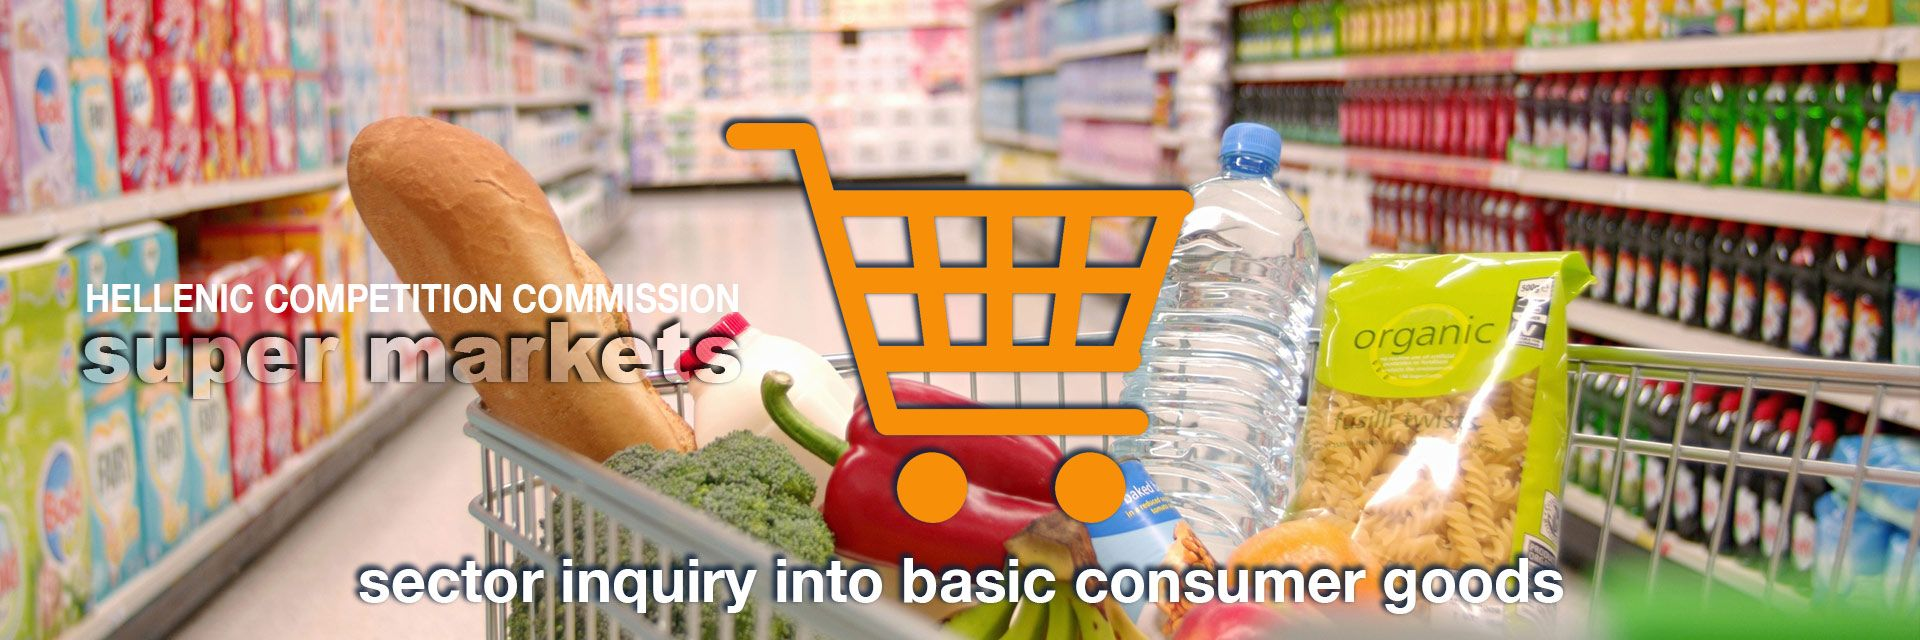 Sector inquiry into basic consumer goods